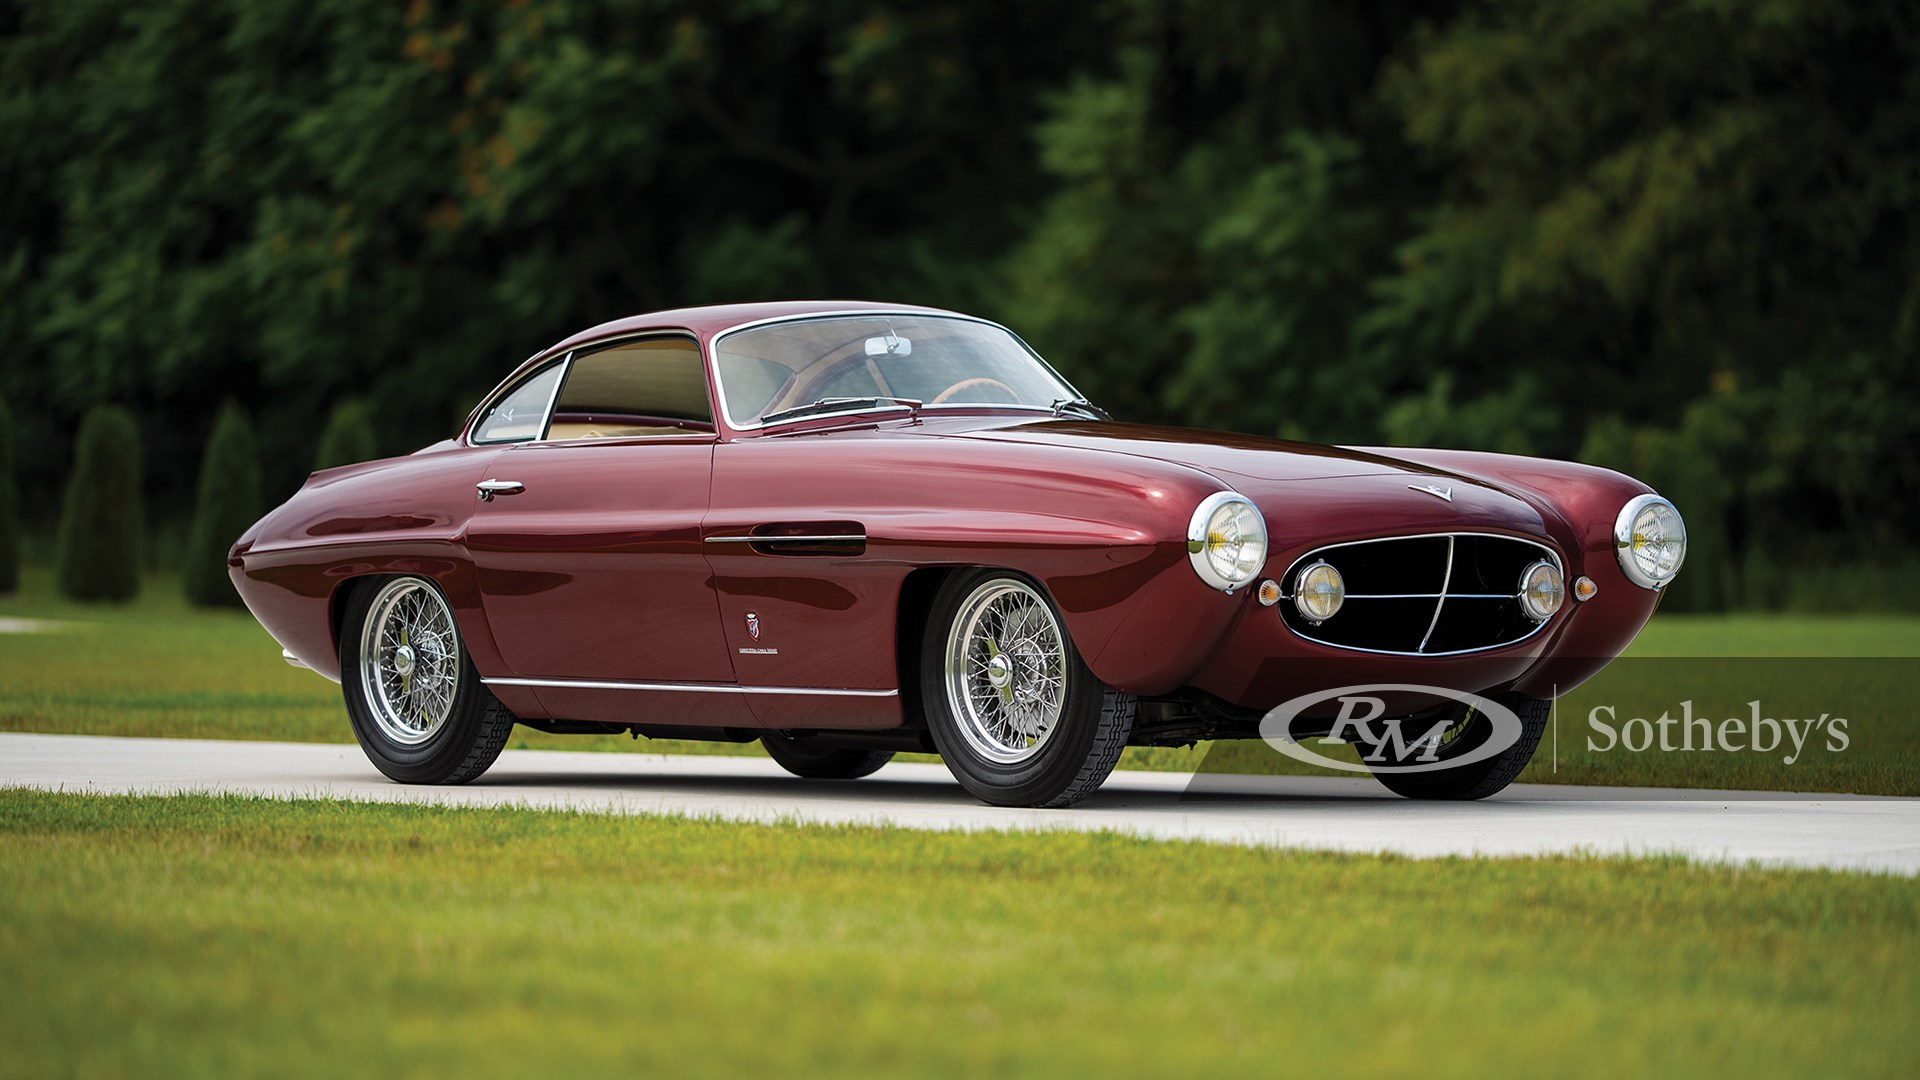 RM Sotheby's The Elkhart Collection 2020, 1953 Fiat 8V Supersonic by Ghia